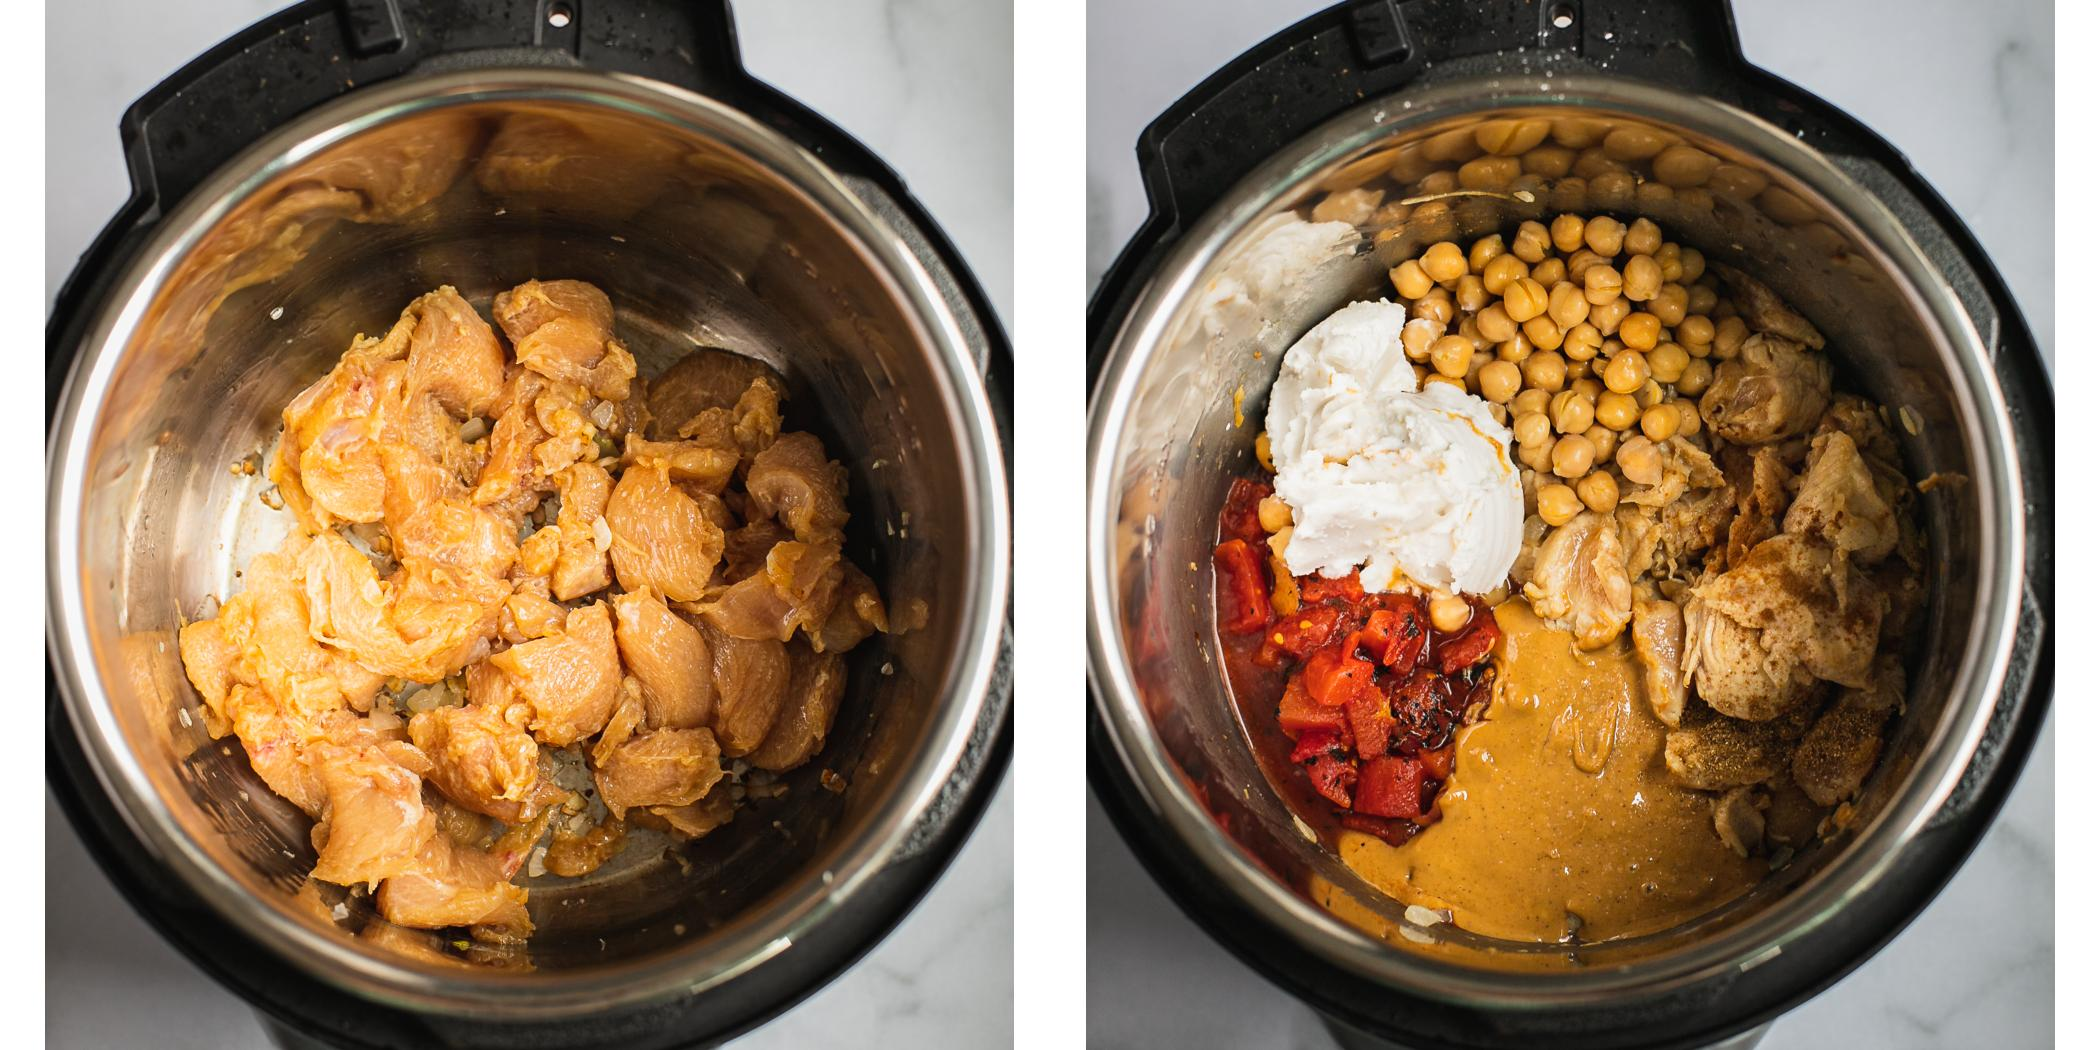 Instruction on how to make peanut butter chicken in an instant pot.